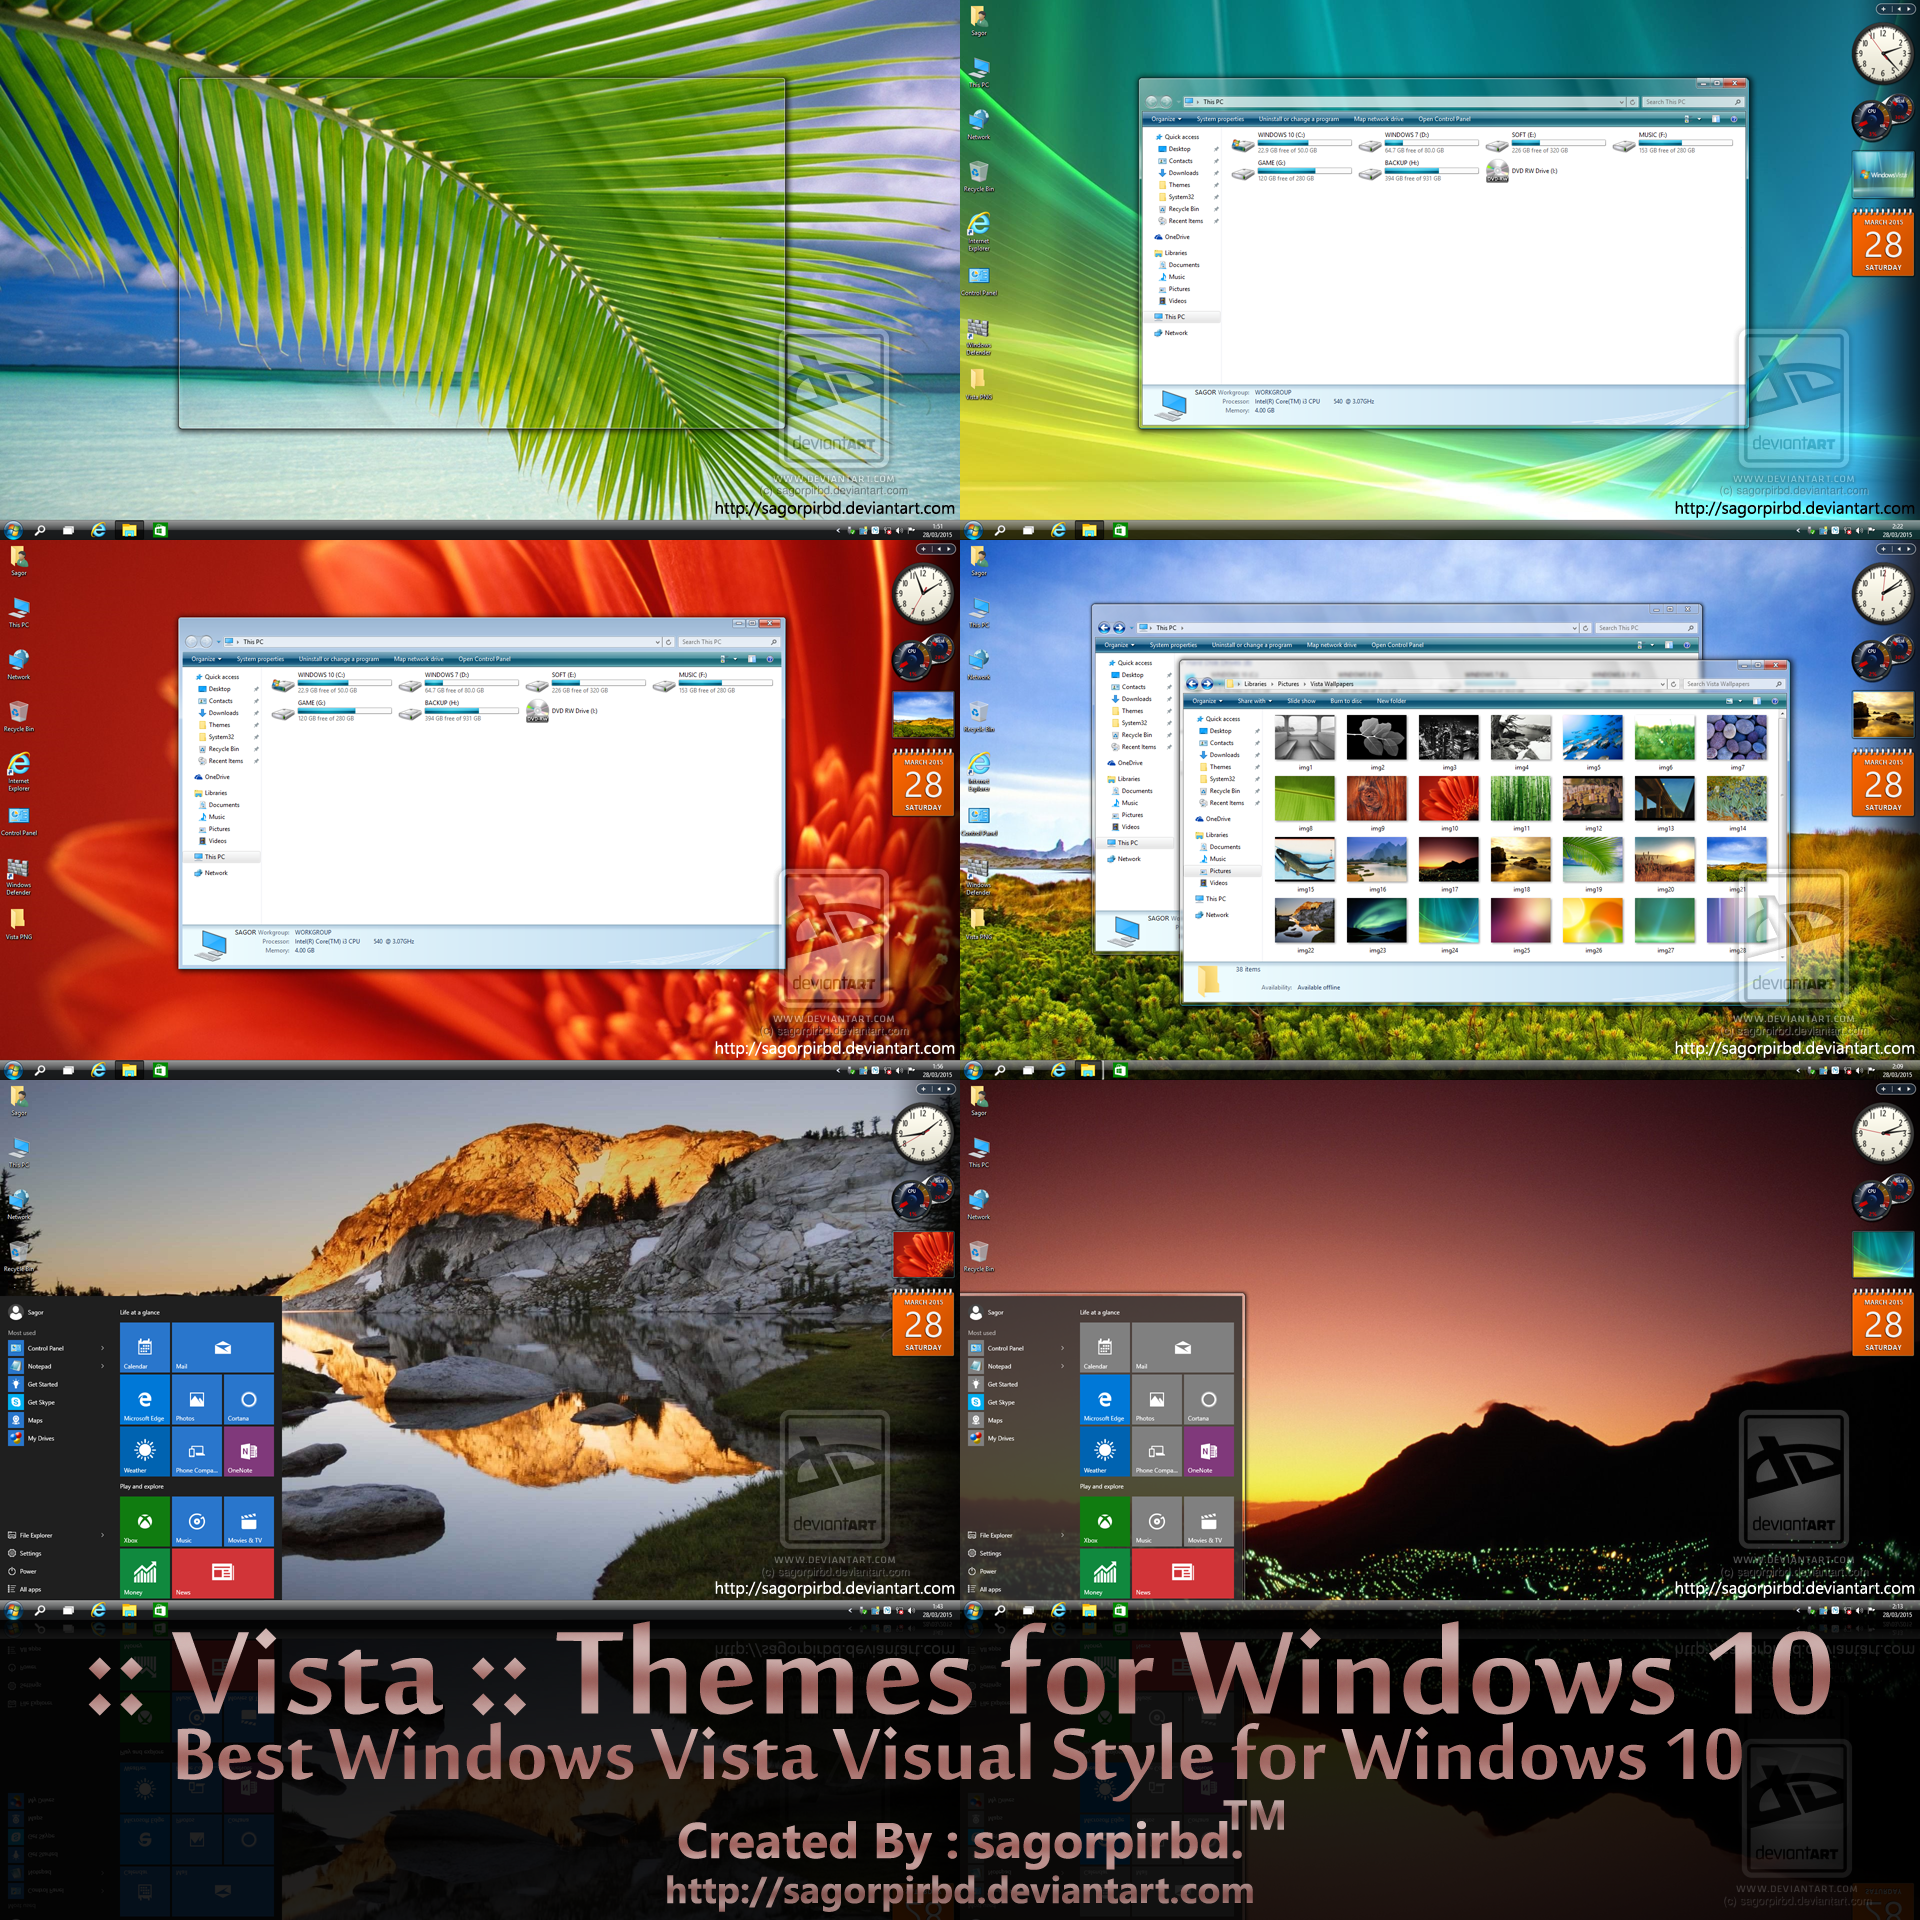 vista themes final for win10 by sagorpirbd on deviantart